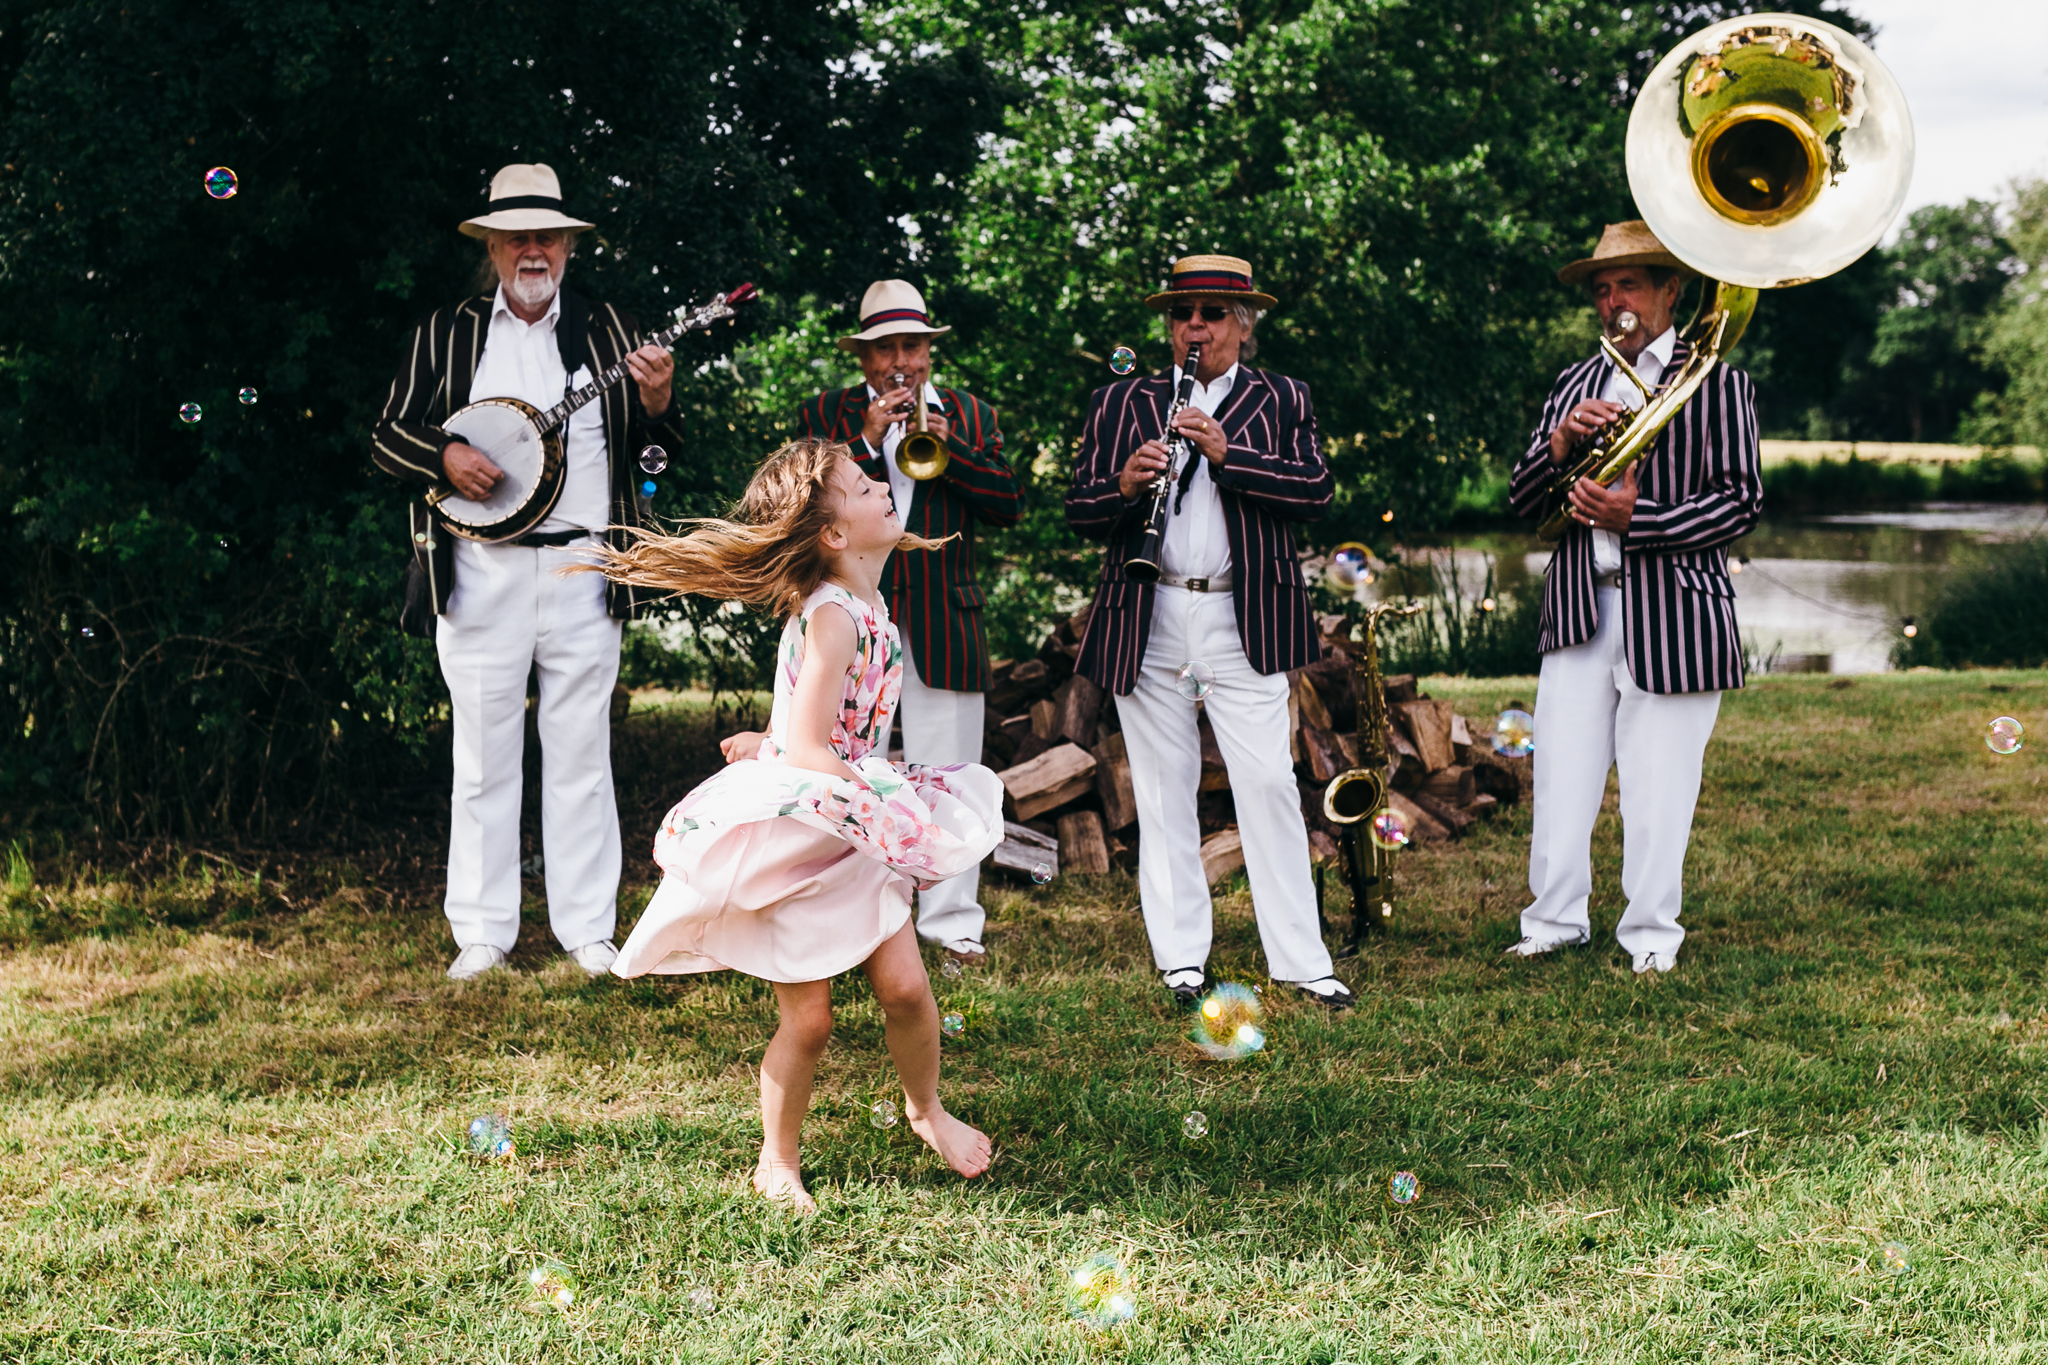 colorful rustic and vintage tipi wedding photography in surrey jazz band